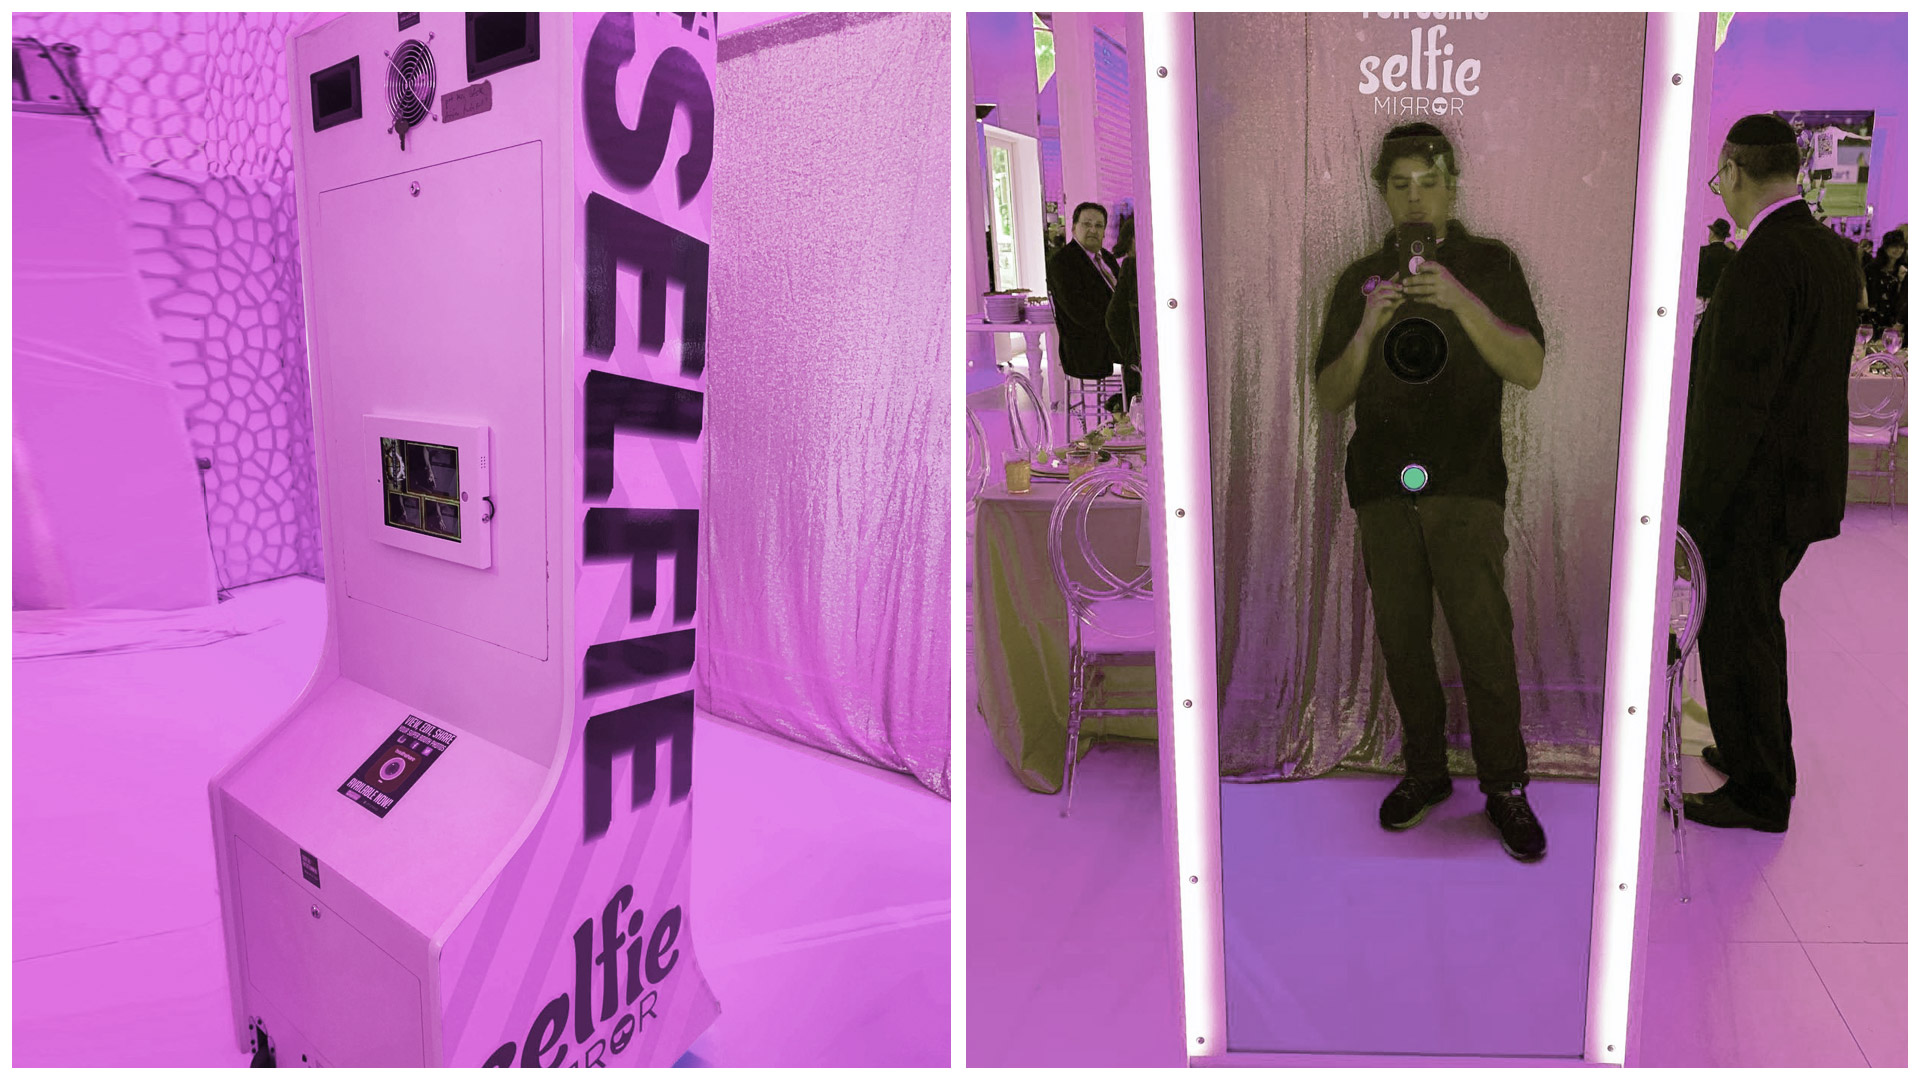 selfie photo booth mirror